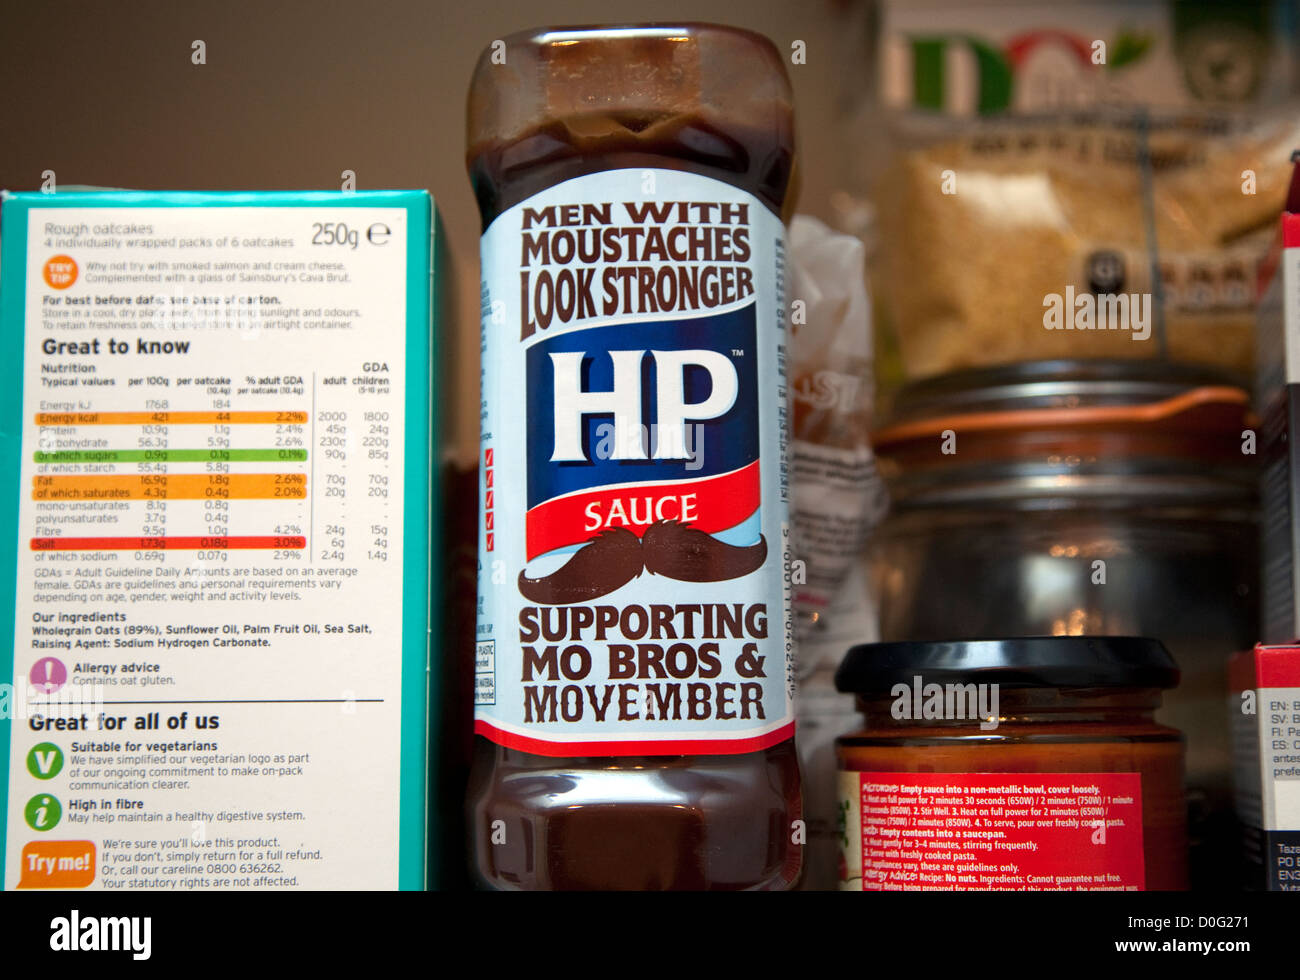 'Movember' bottle of HP sauce, London - Stock Image